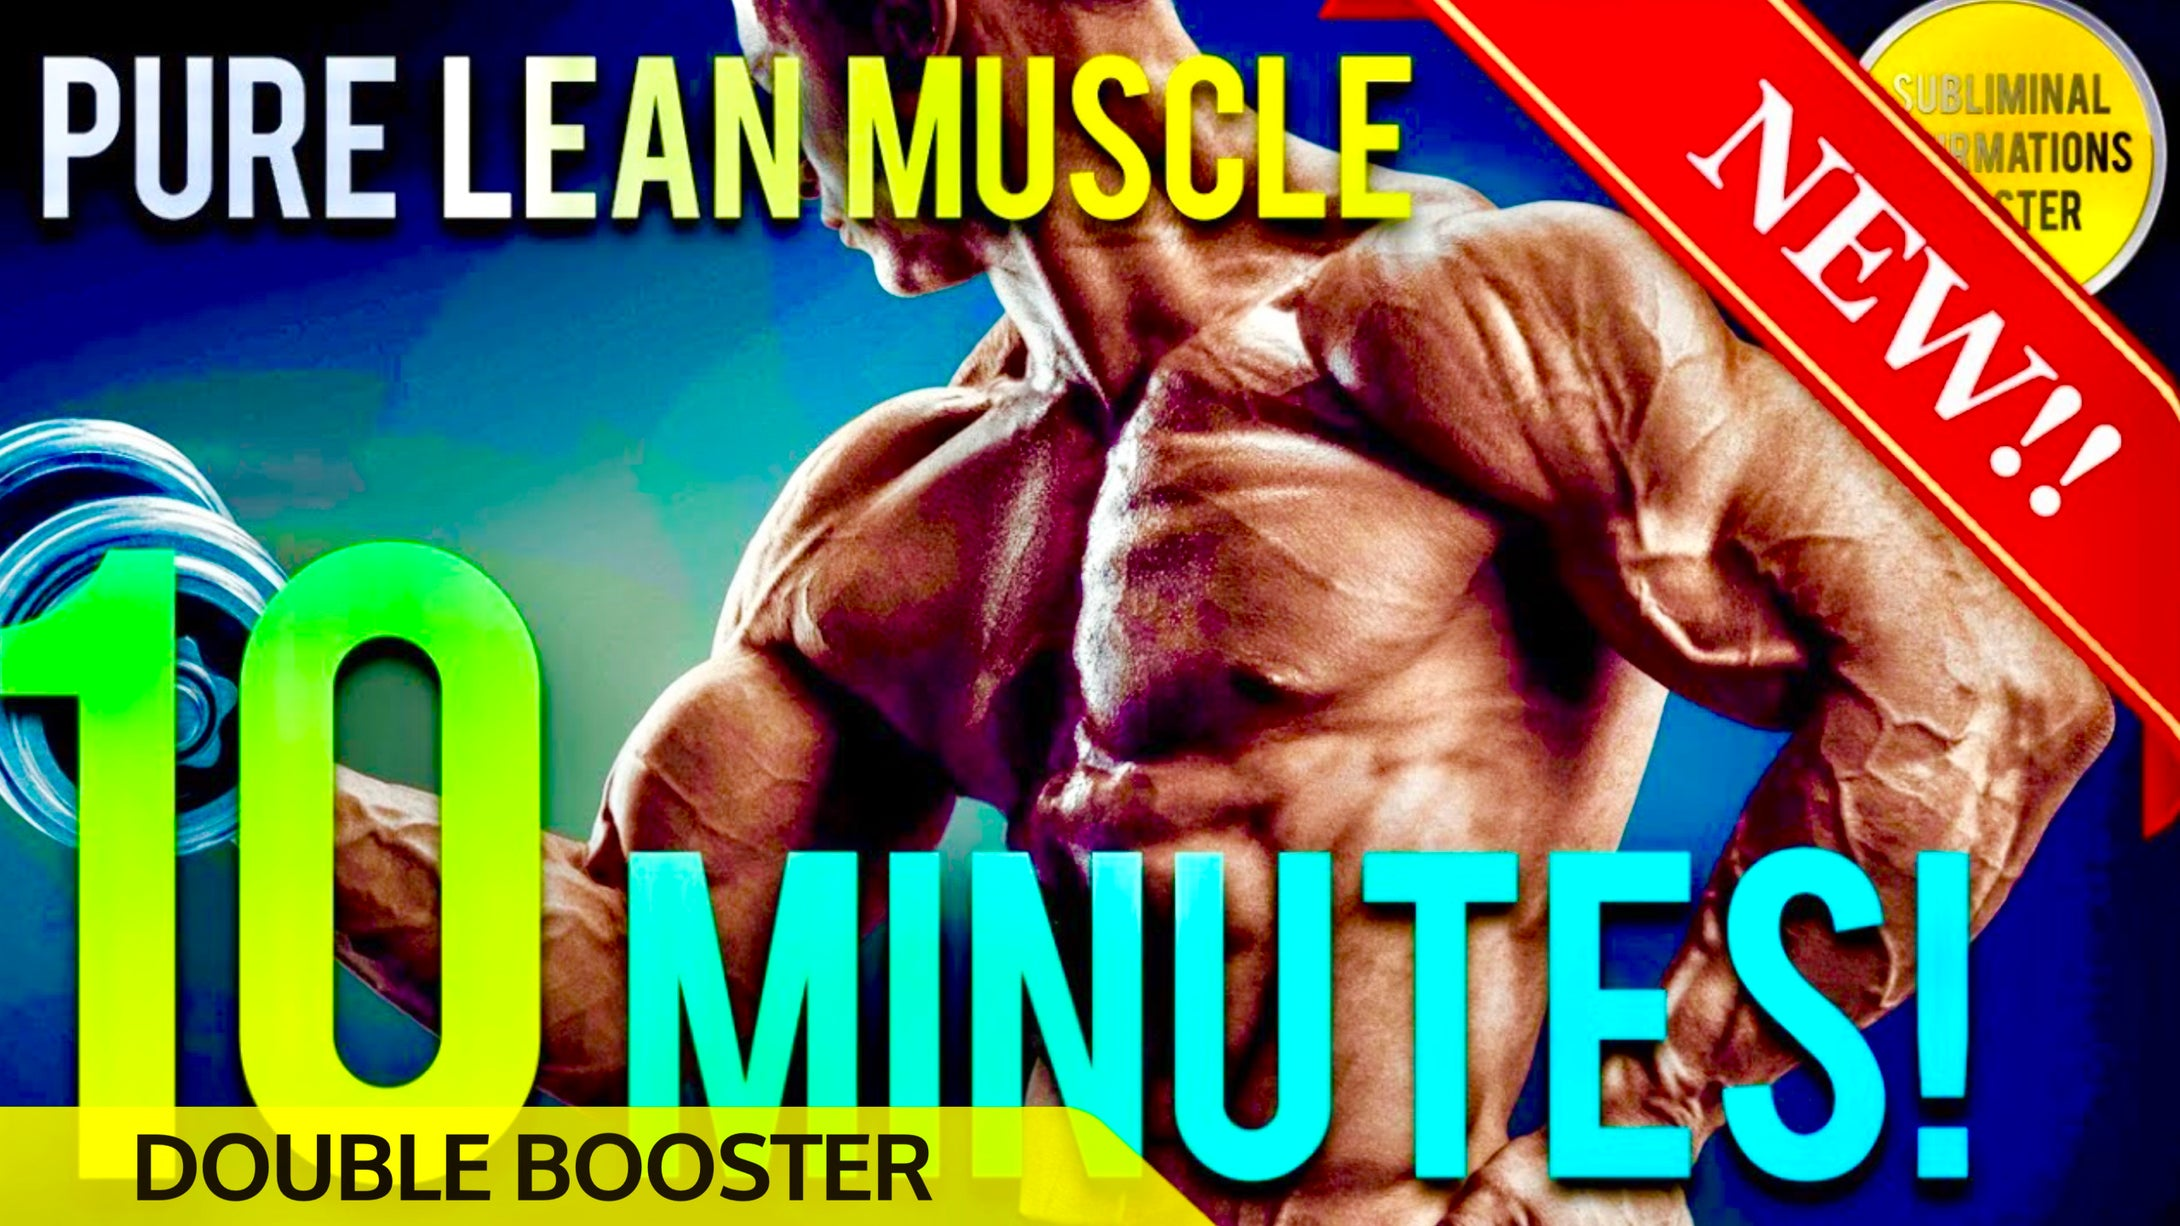 GAIN 10 POUNDS OF PURE MUSCLE IN 10 MINUTES! SUBLIMINAL AFFIRMATIONS BOOSTER! RESULTS DAILY!